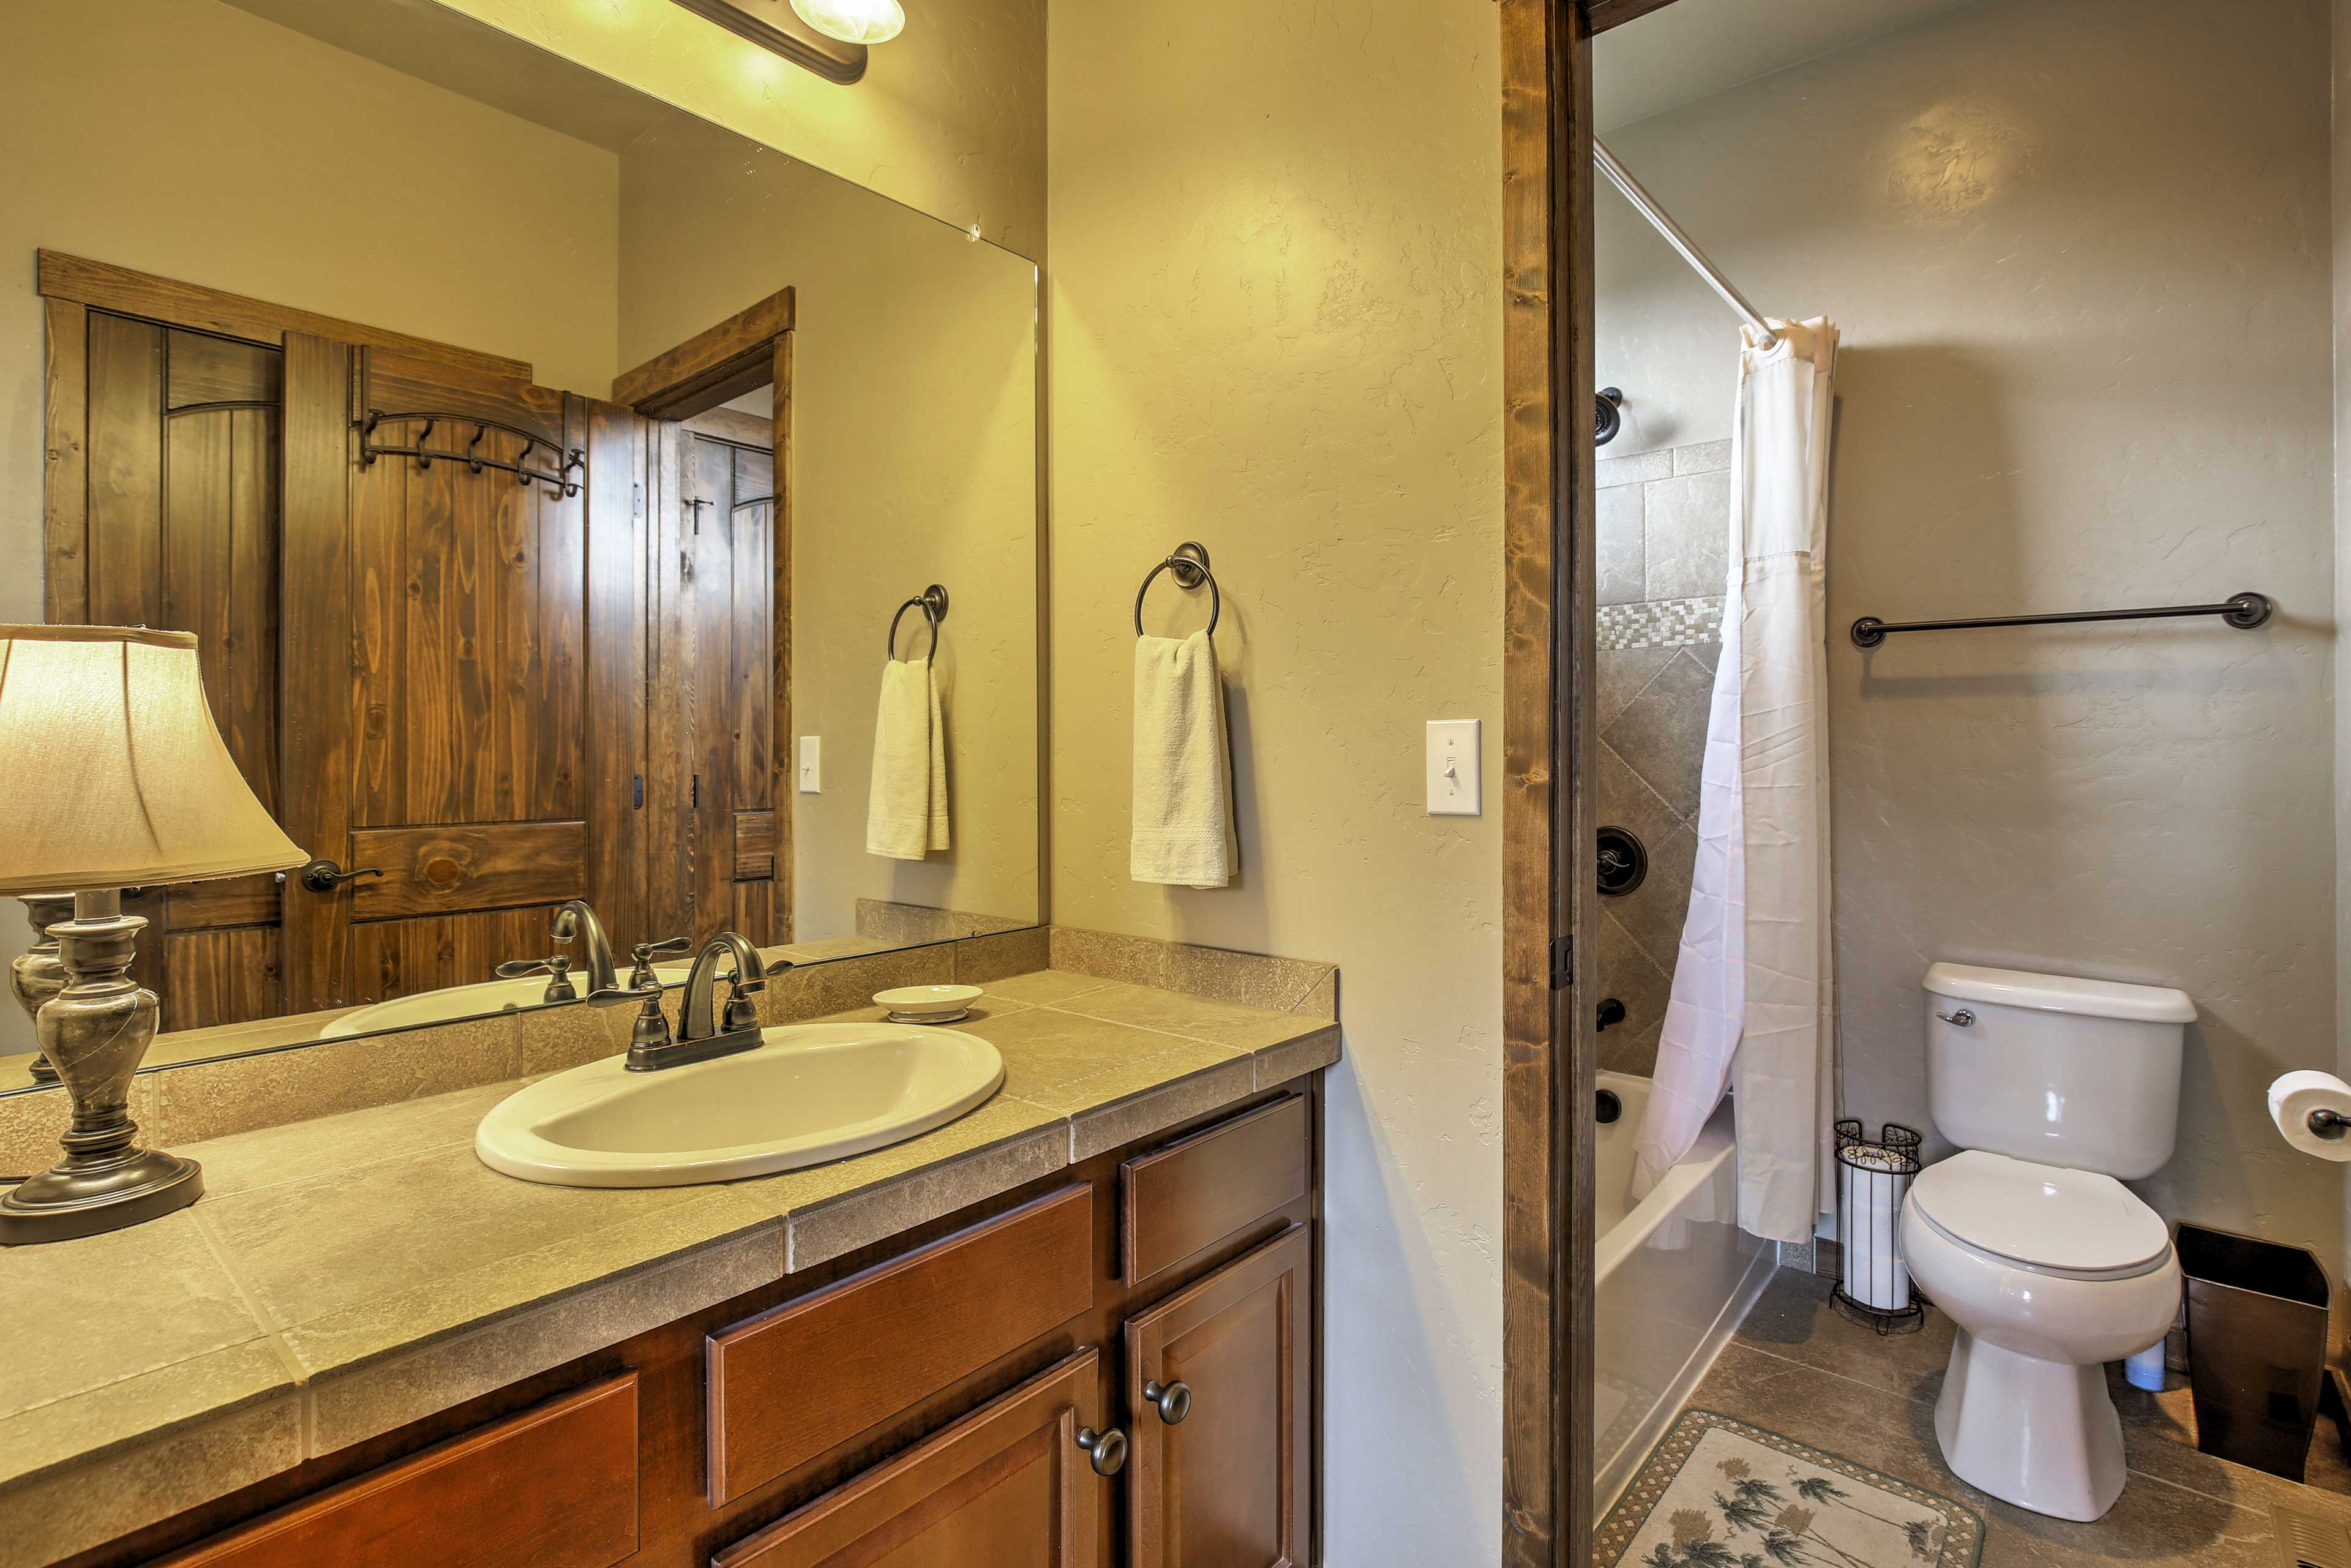 Rinse off in one of the 3 bathrooms.